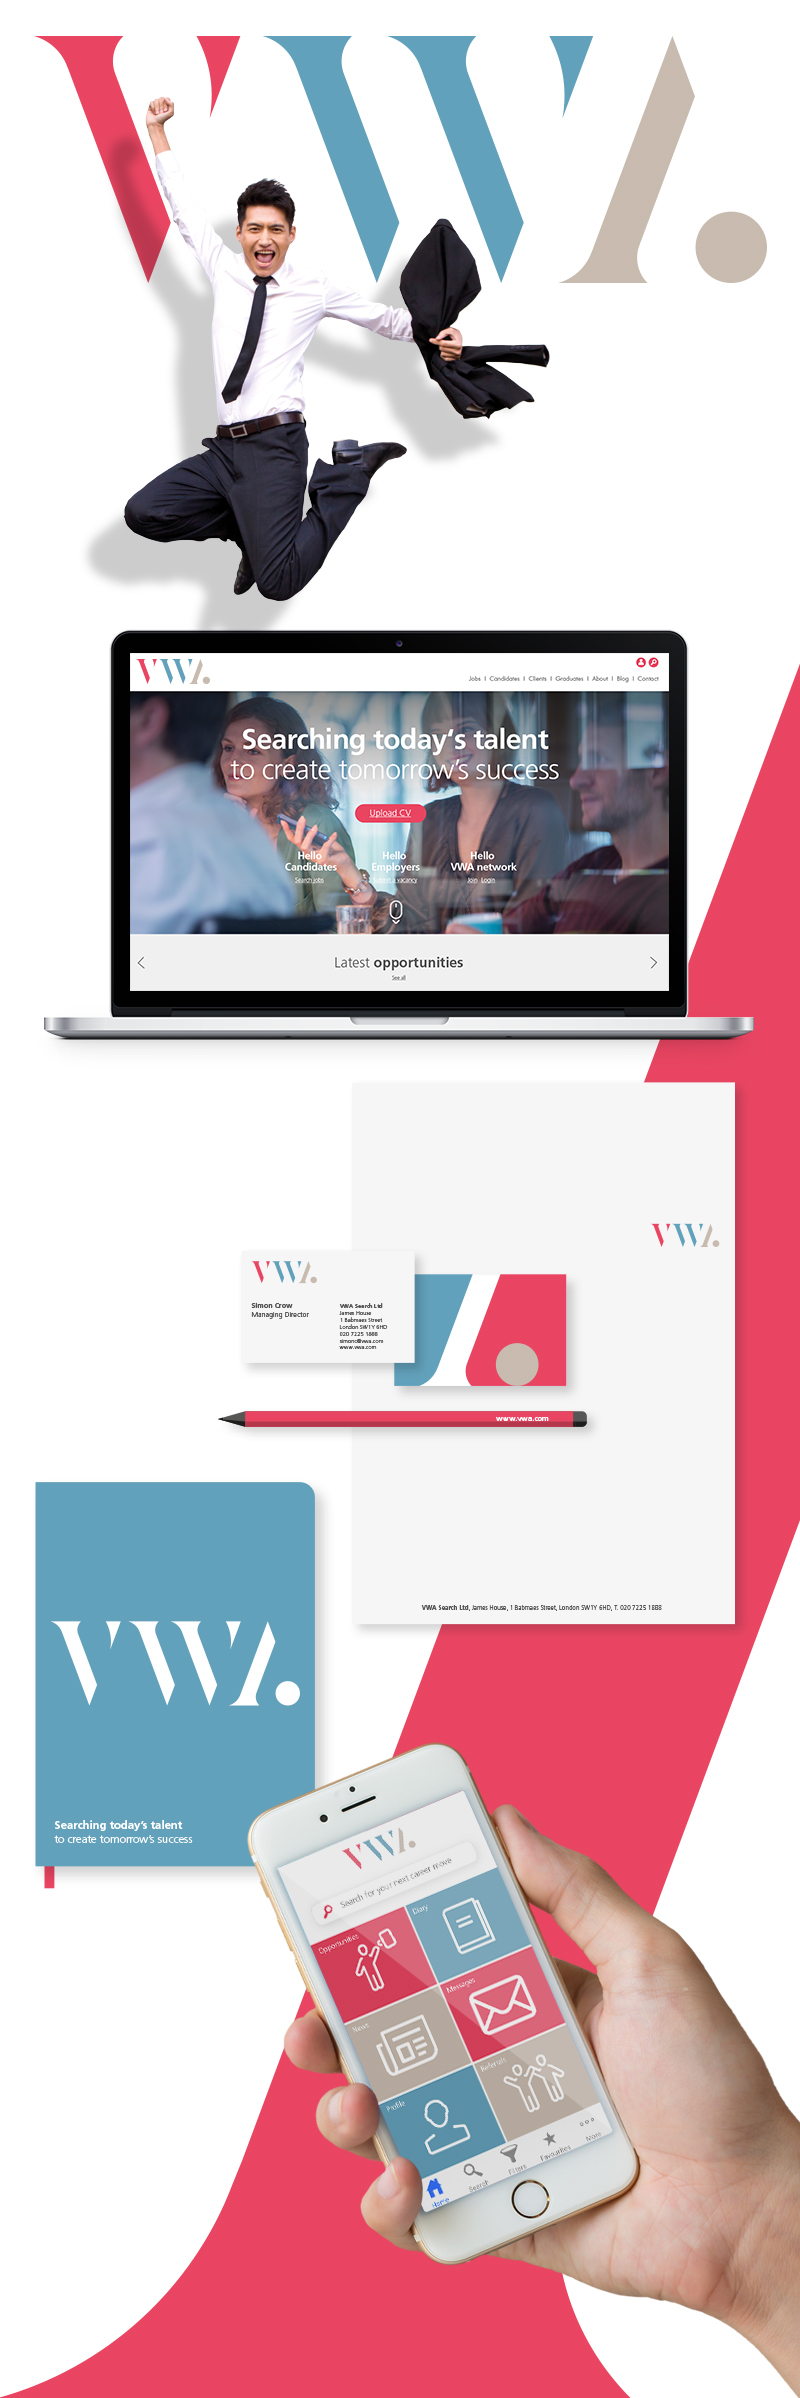 VWA-DM-website-presentation2.jpg